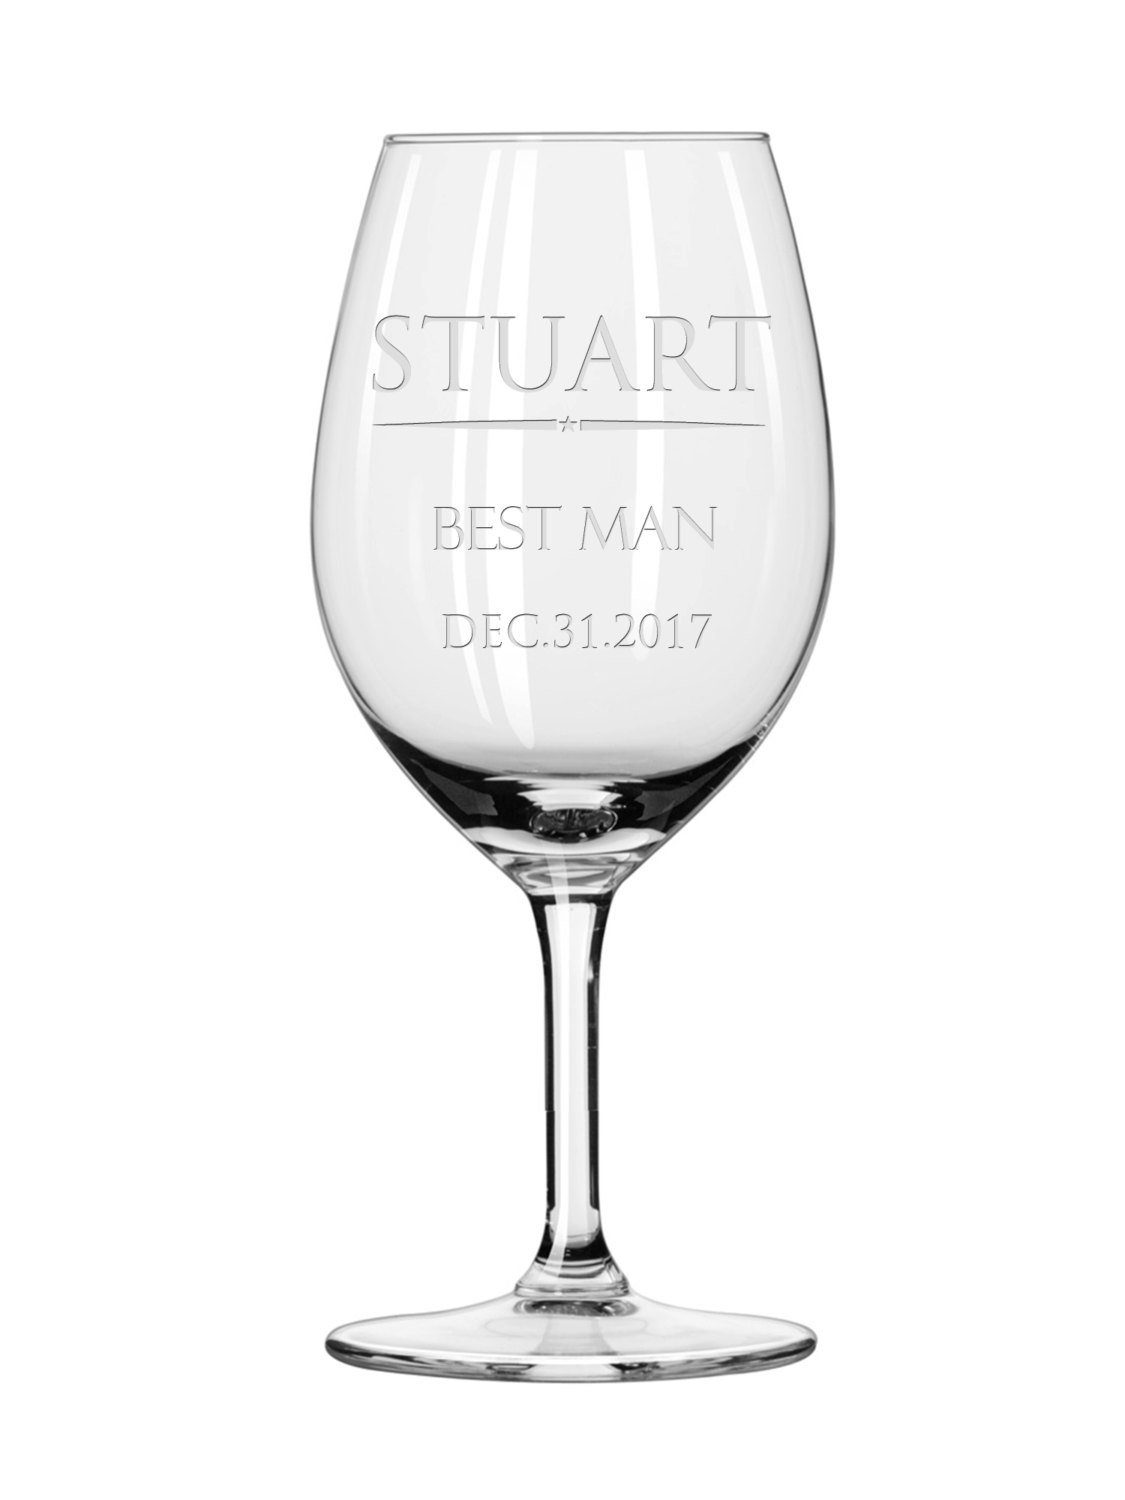 Amazon.com: Best man wine glass, Personalized Engraved Wine Glass ...